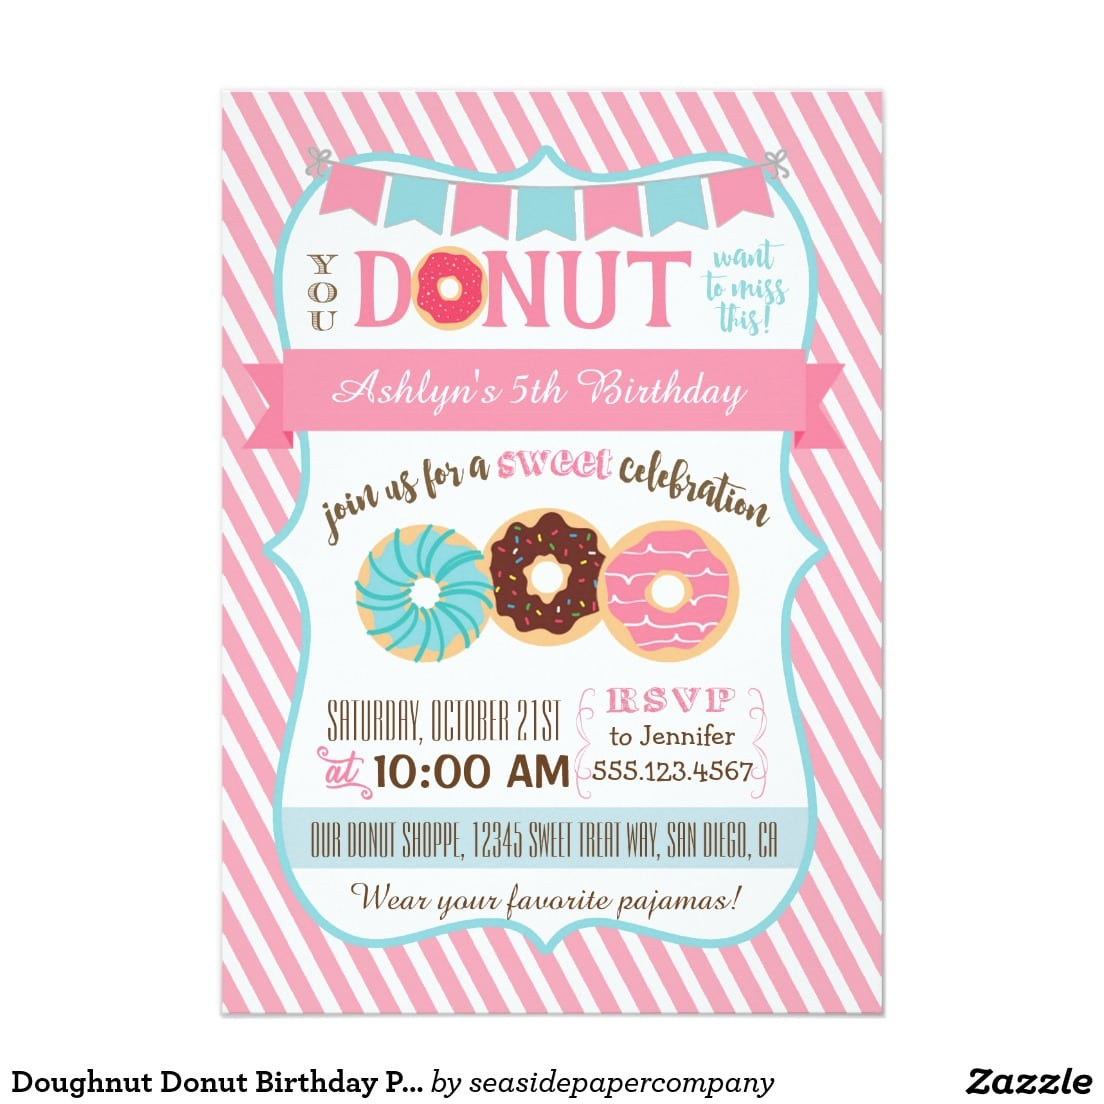 Doughnut Donut Birthday Party Invitation Pink Girl